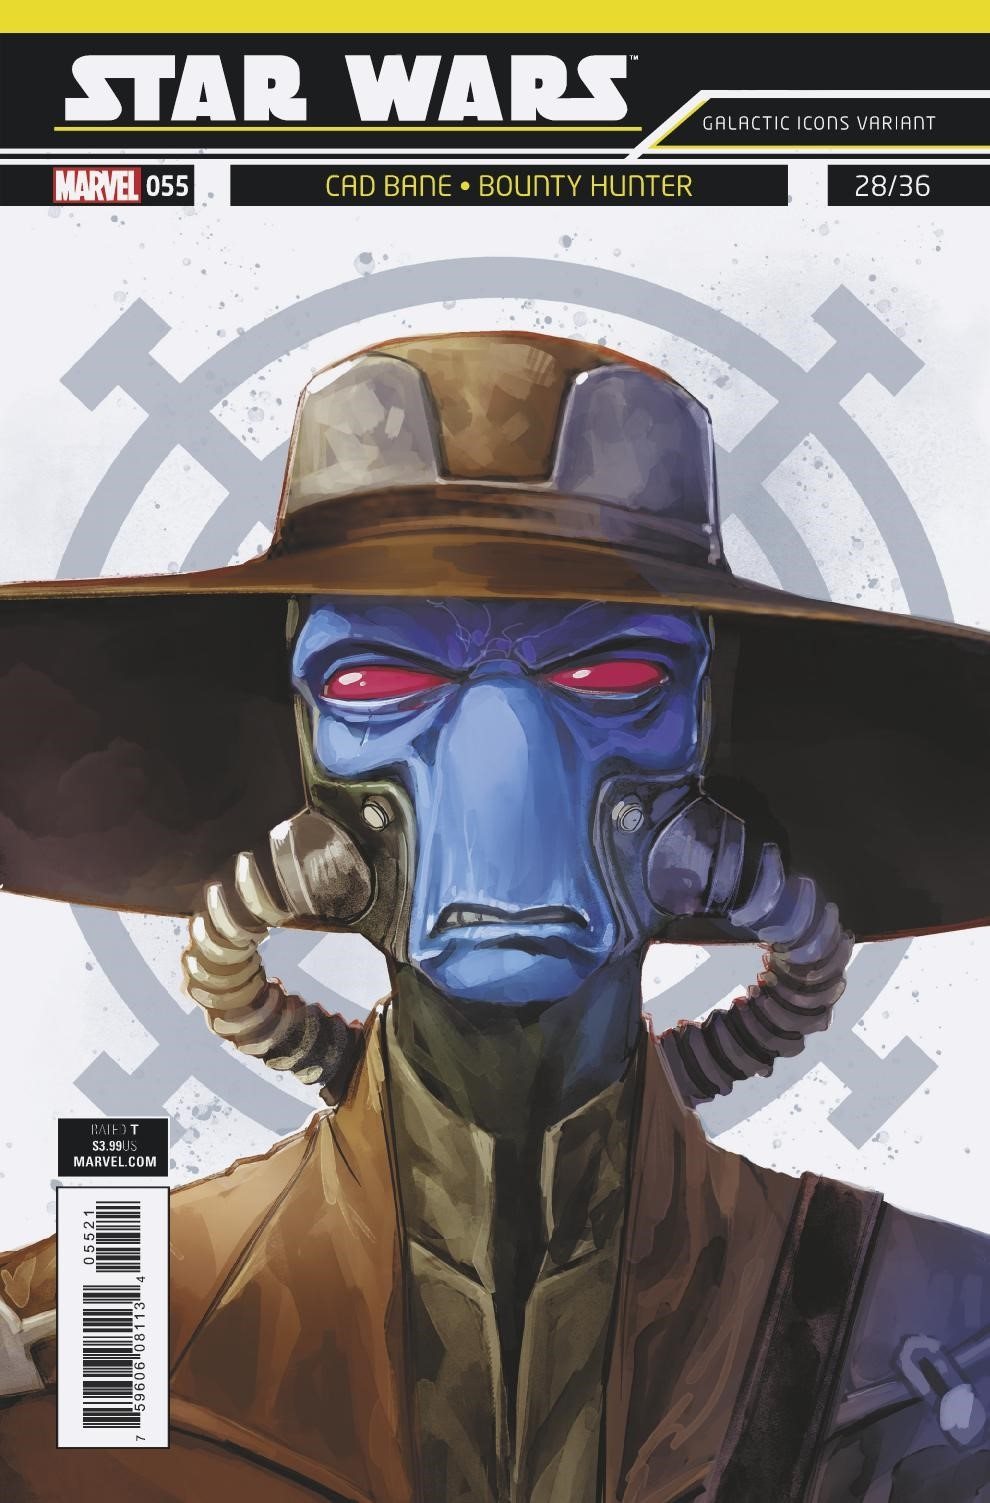 """Star Wars #55 (Rod Reis Galactic Icon """"Cad Bane"""" Variant Cover) (03.10.2018)"""